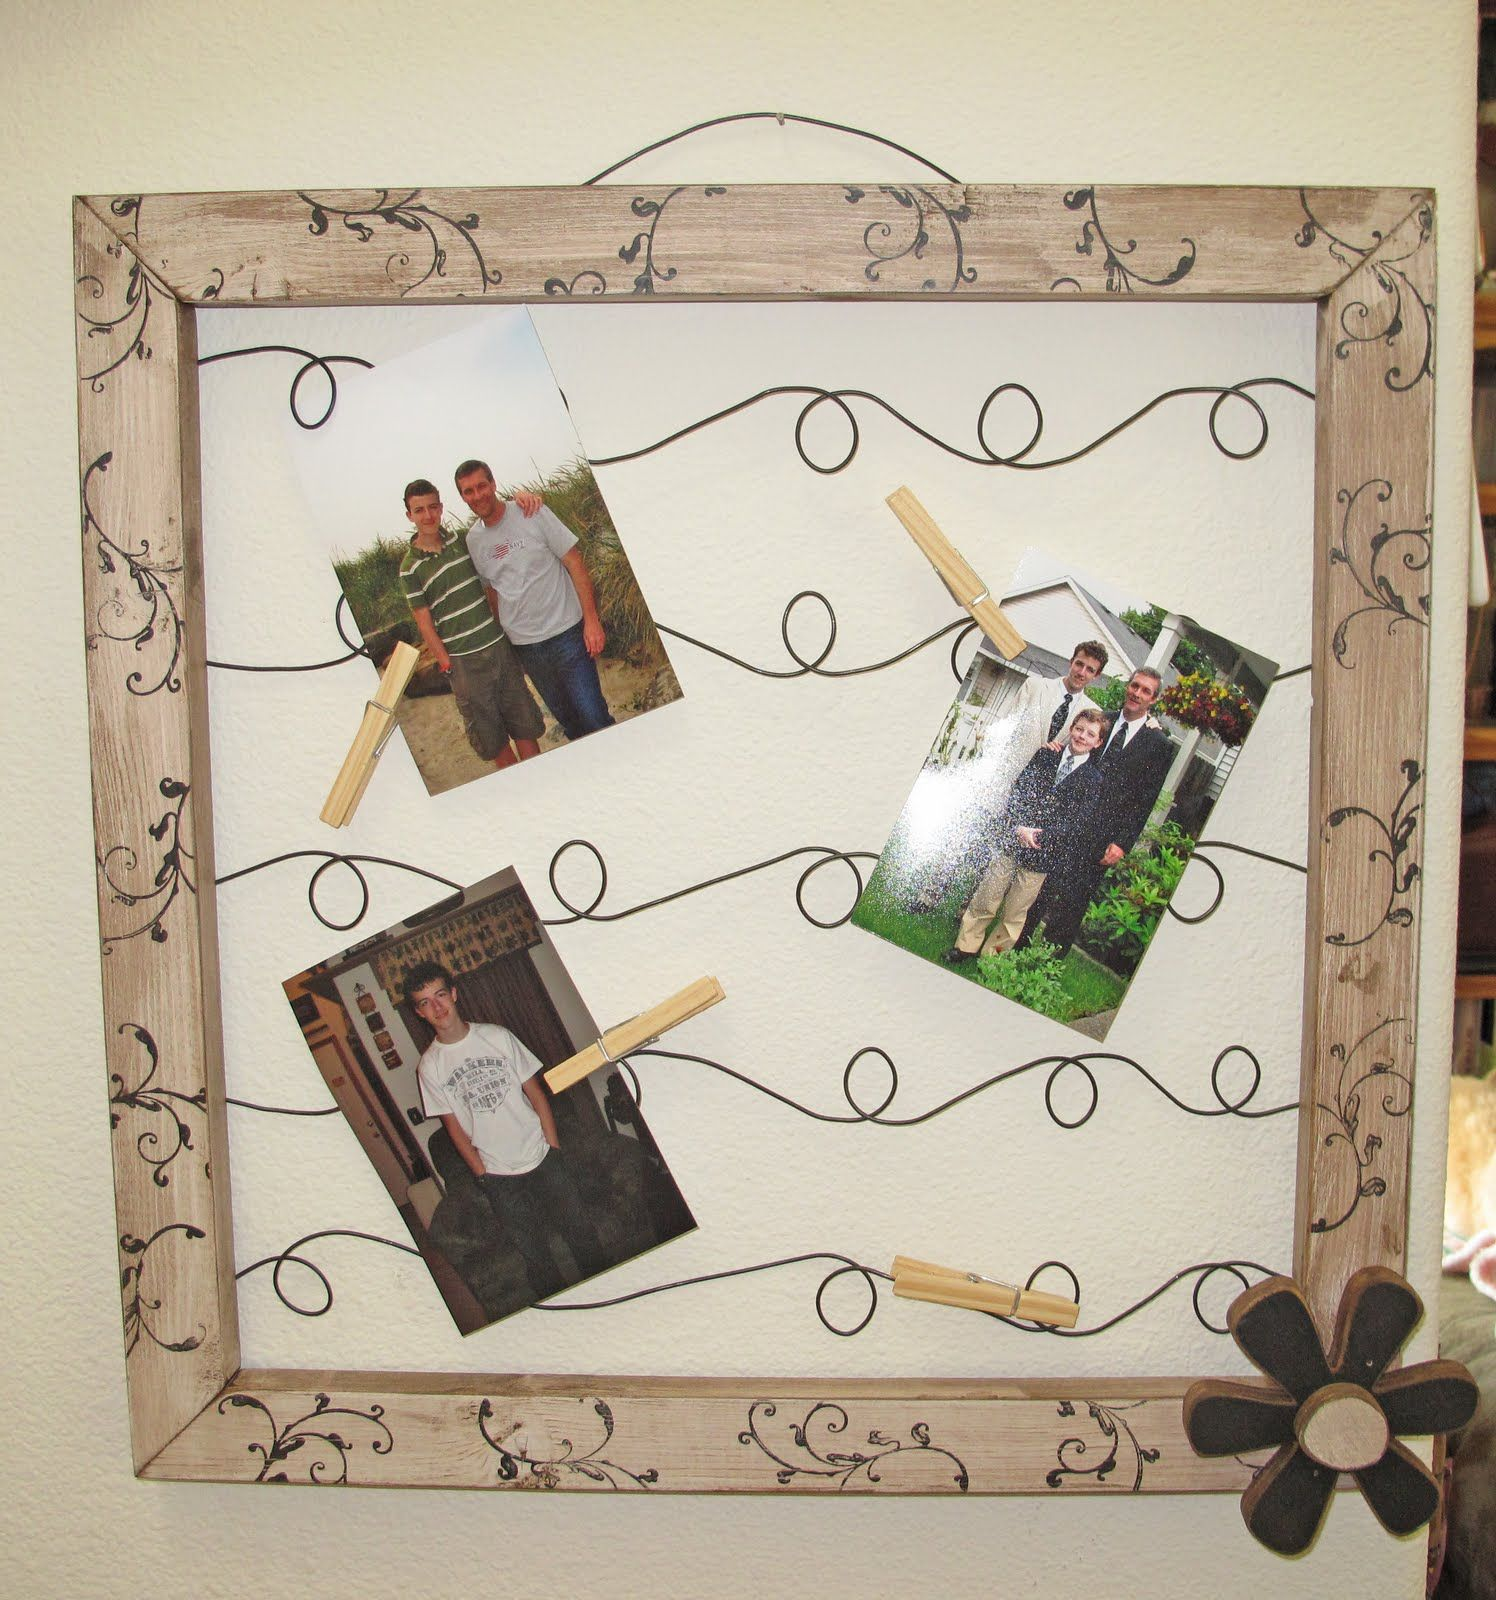 G j g j wire picturenote frames how to project ideas g j g j wire picturenote frames how to jeuxipadfo Image collections